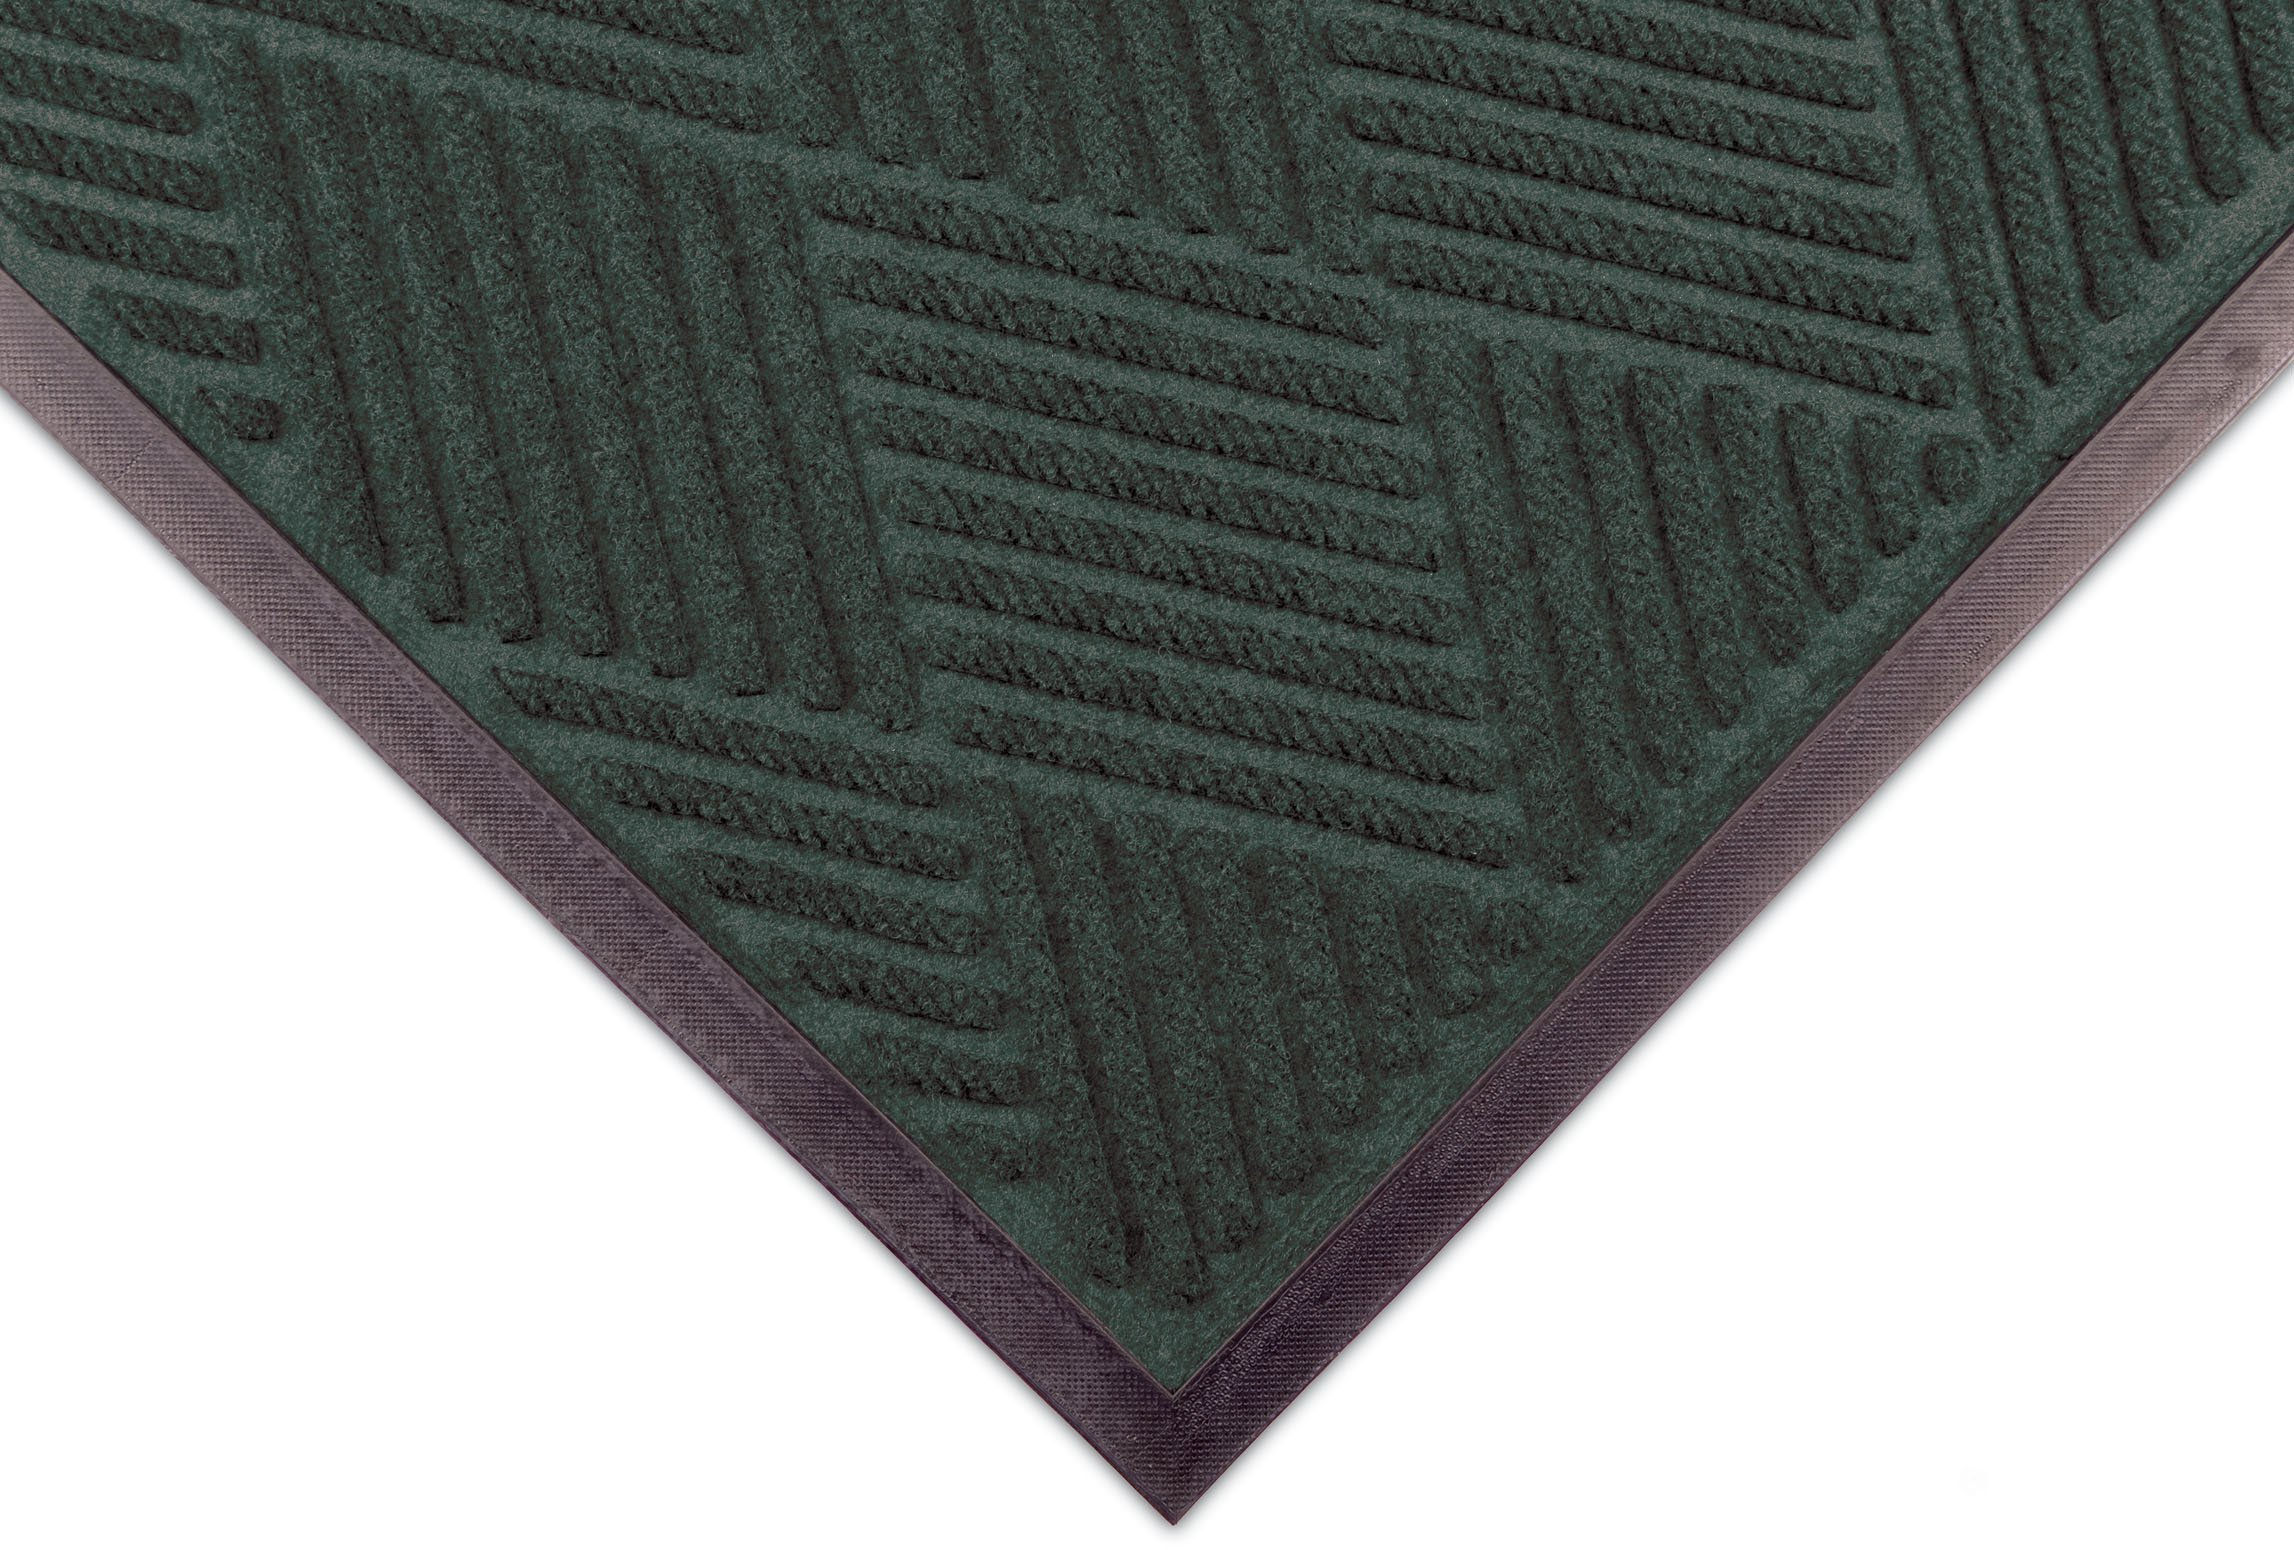 Notrax 168 Opus Entrance Mat, for Heavy Traffic Areas, 4' Width x 6' Length x 3/8'' Thickness, Hunter Green